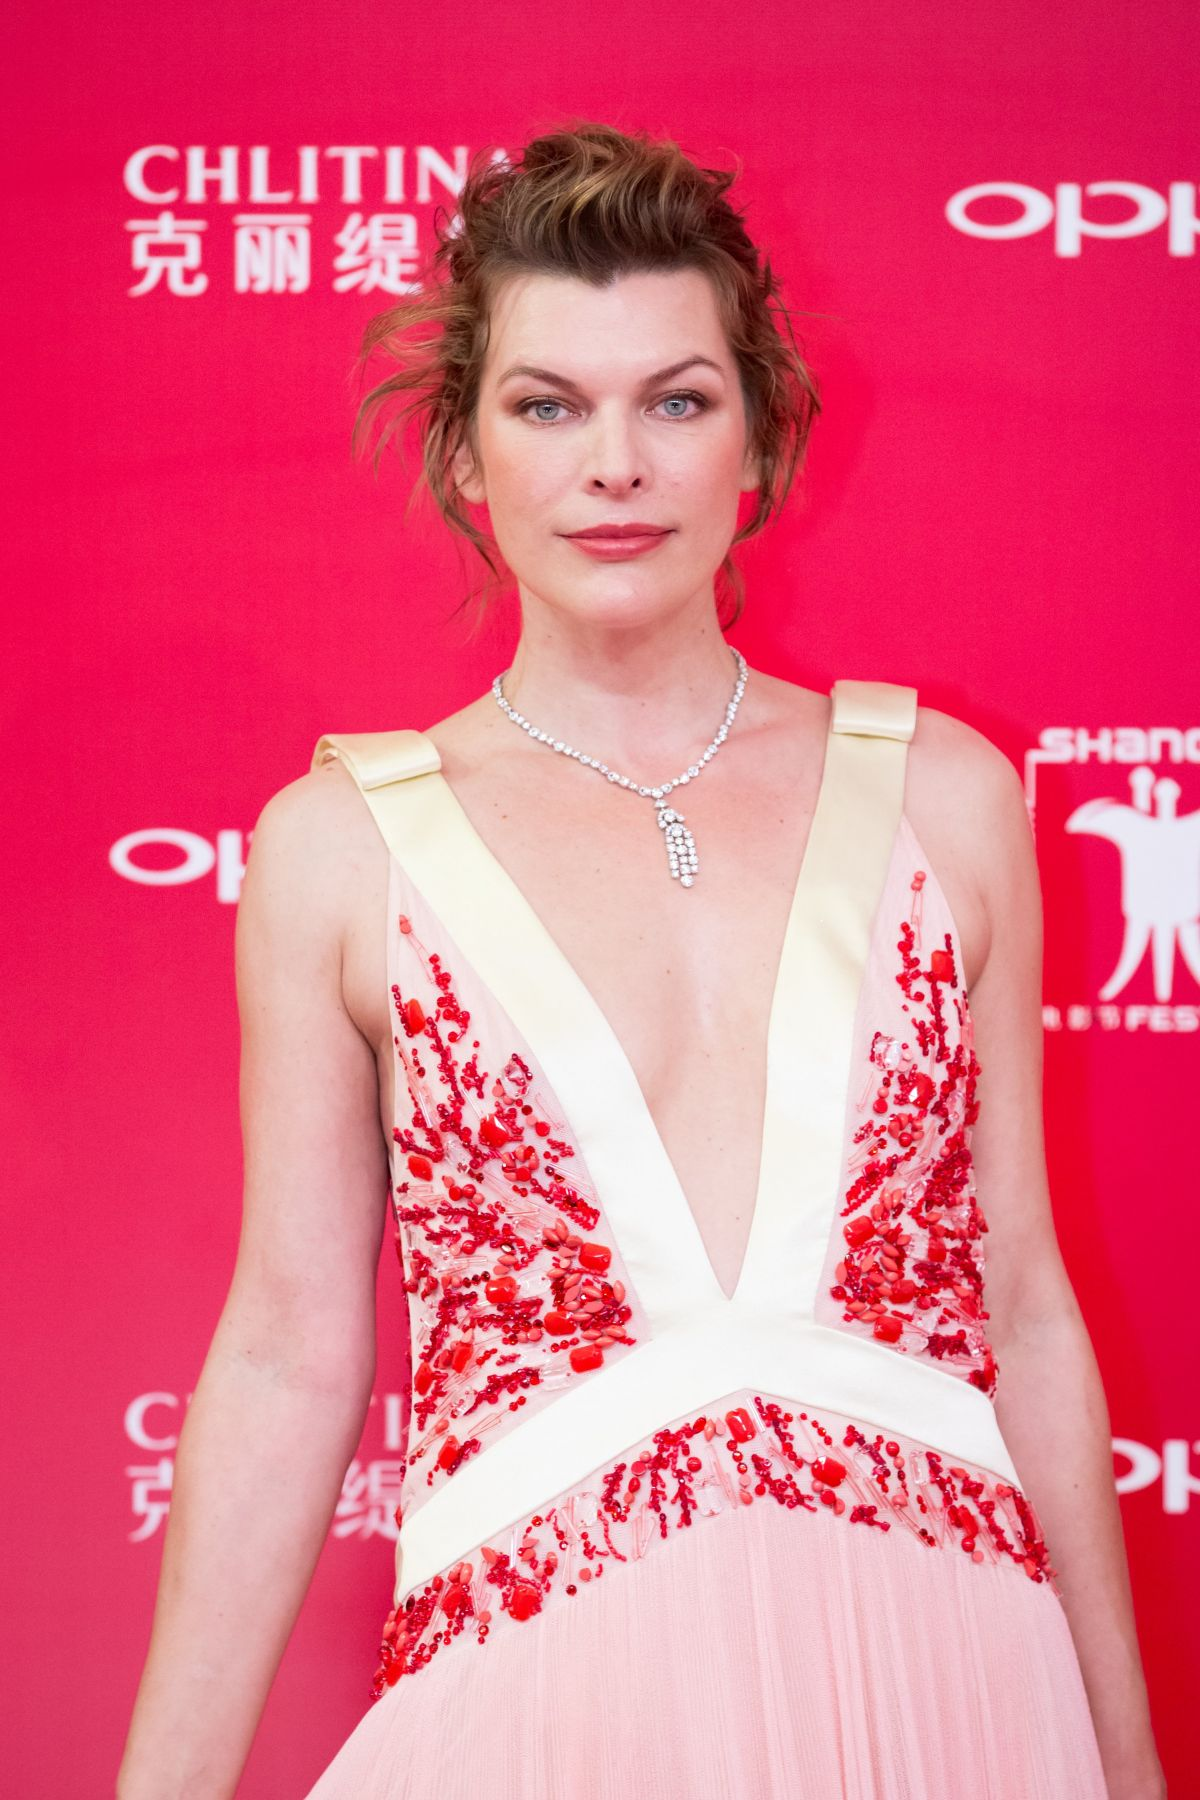 MILLA JOVOVICH at Shanghai International Film Festival ... Milla Jovovich